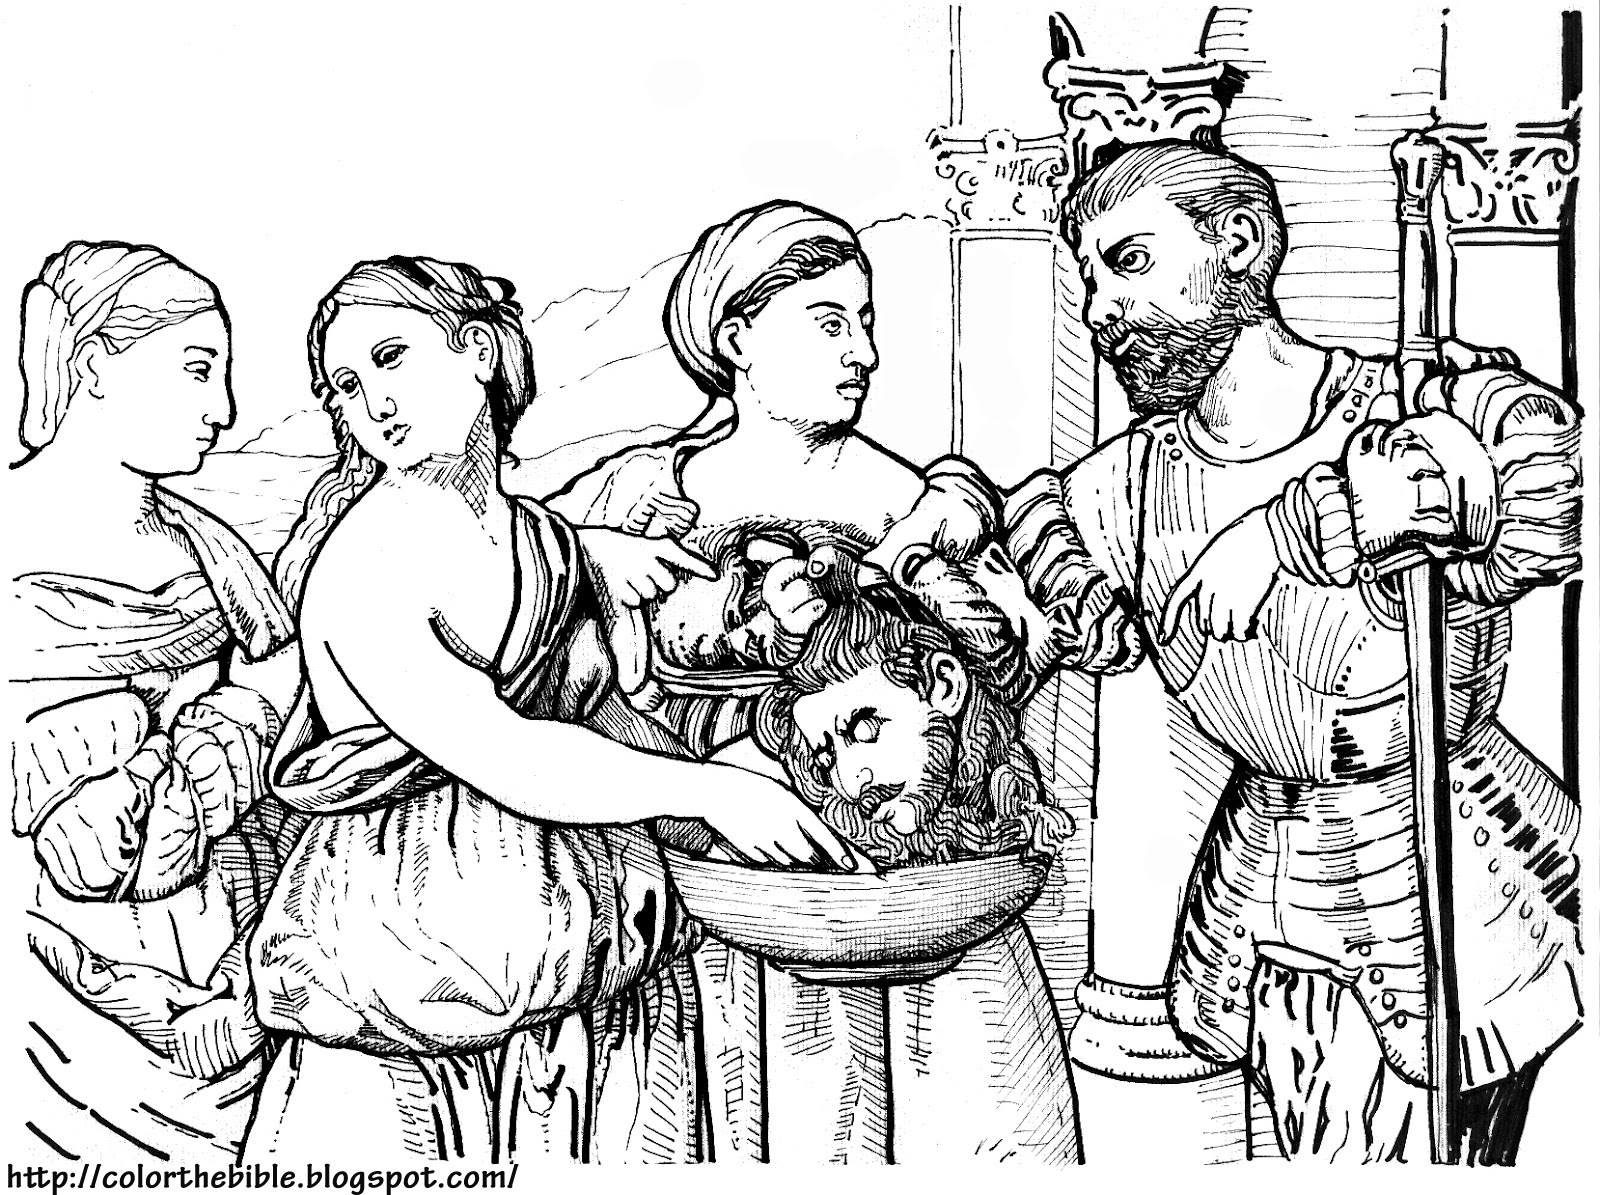 Free coloring pages john the baptist - Description Of Coloring Page The Evil Of Mankind Made Obvious Herod And Herodias Holding The Head Of The Baptist John The Baptist Martyred